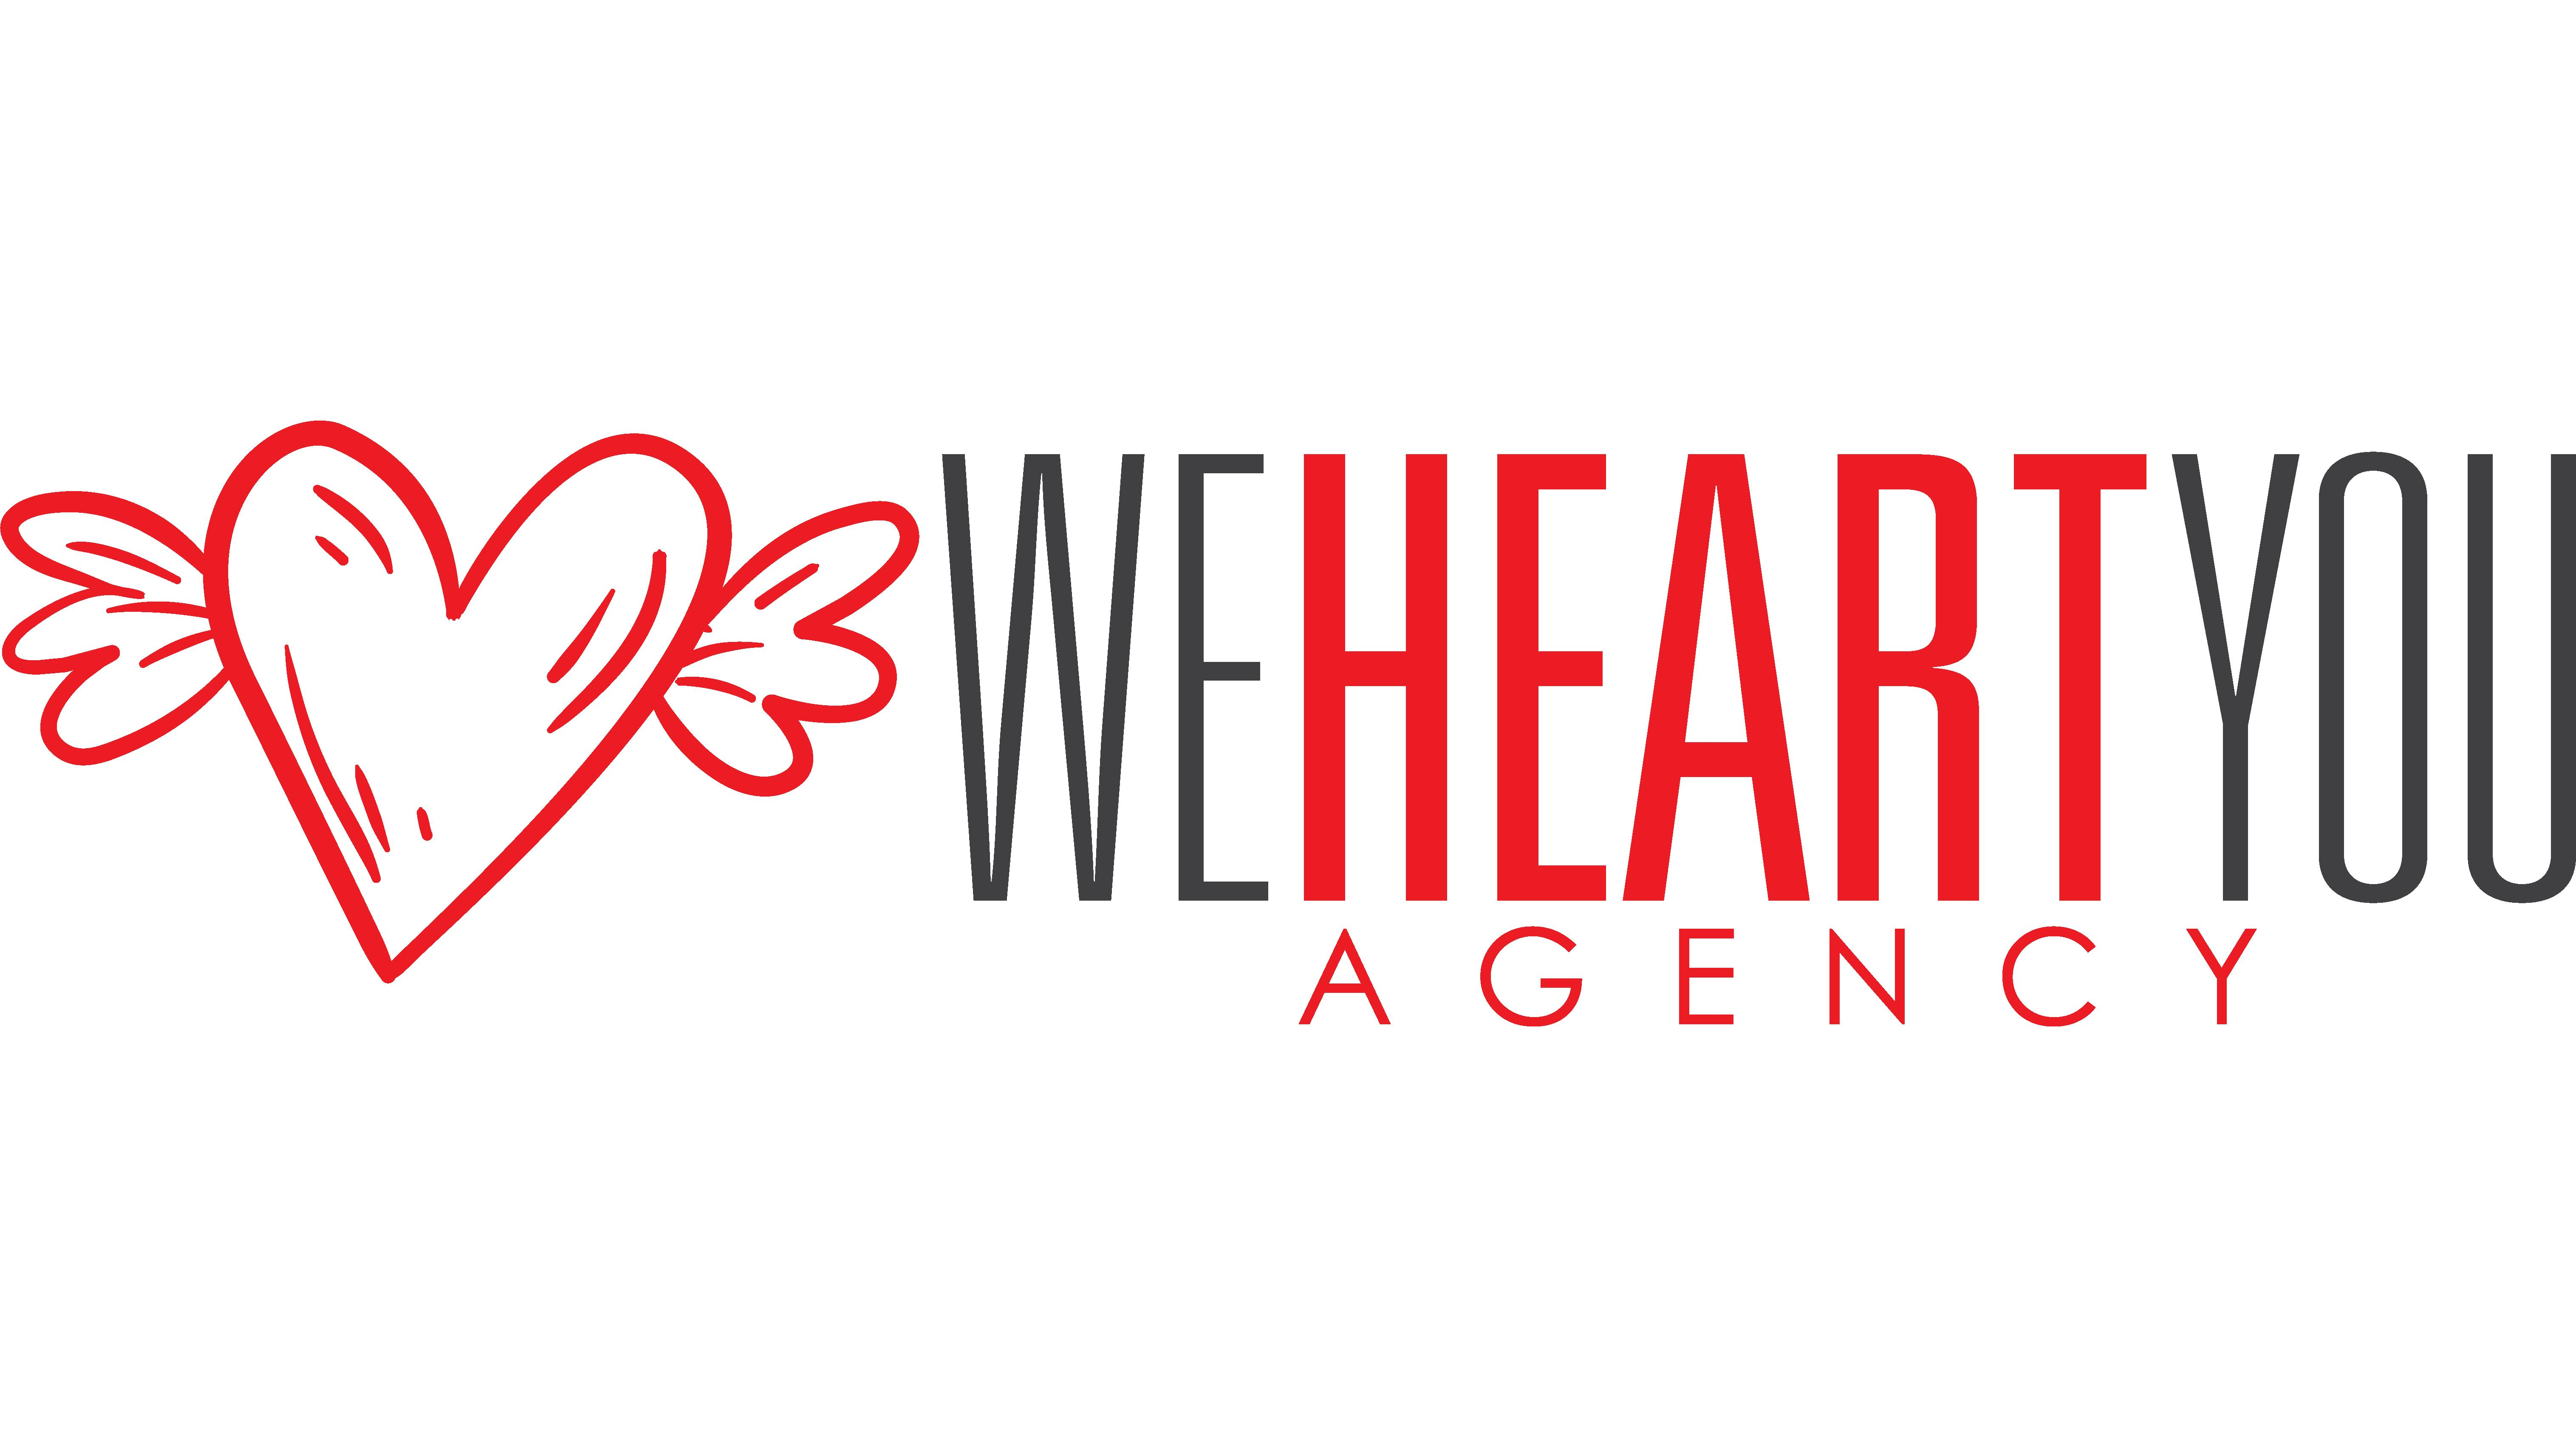 We Heart You, a Digital Marketing Agency, is Poised to Help Small Businesses Get Back on their Feet